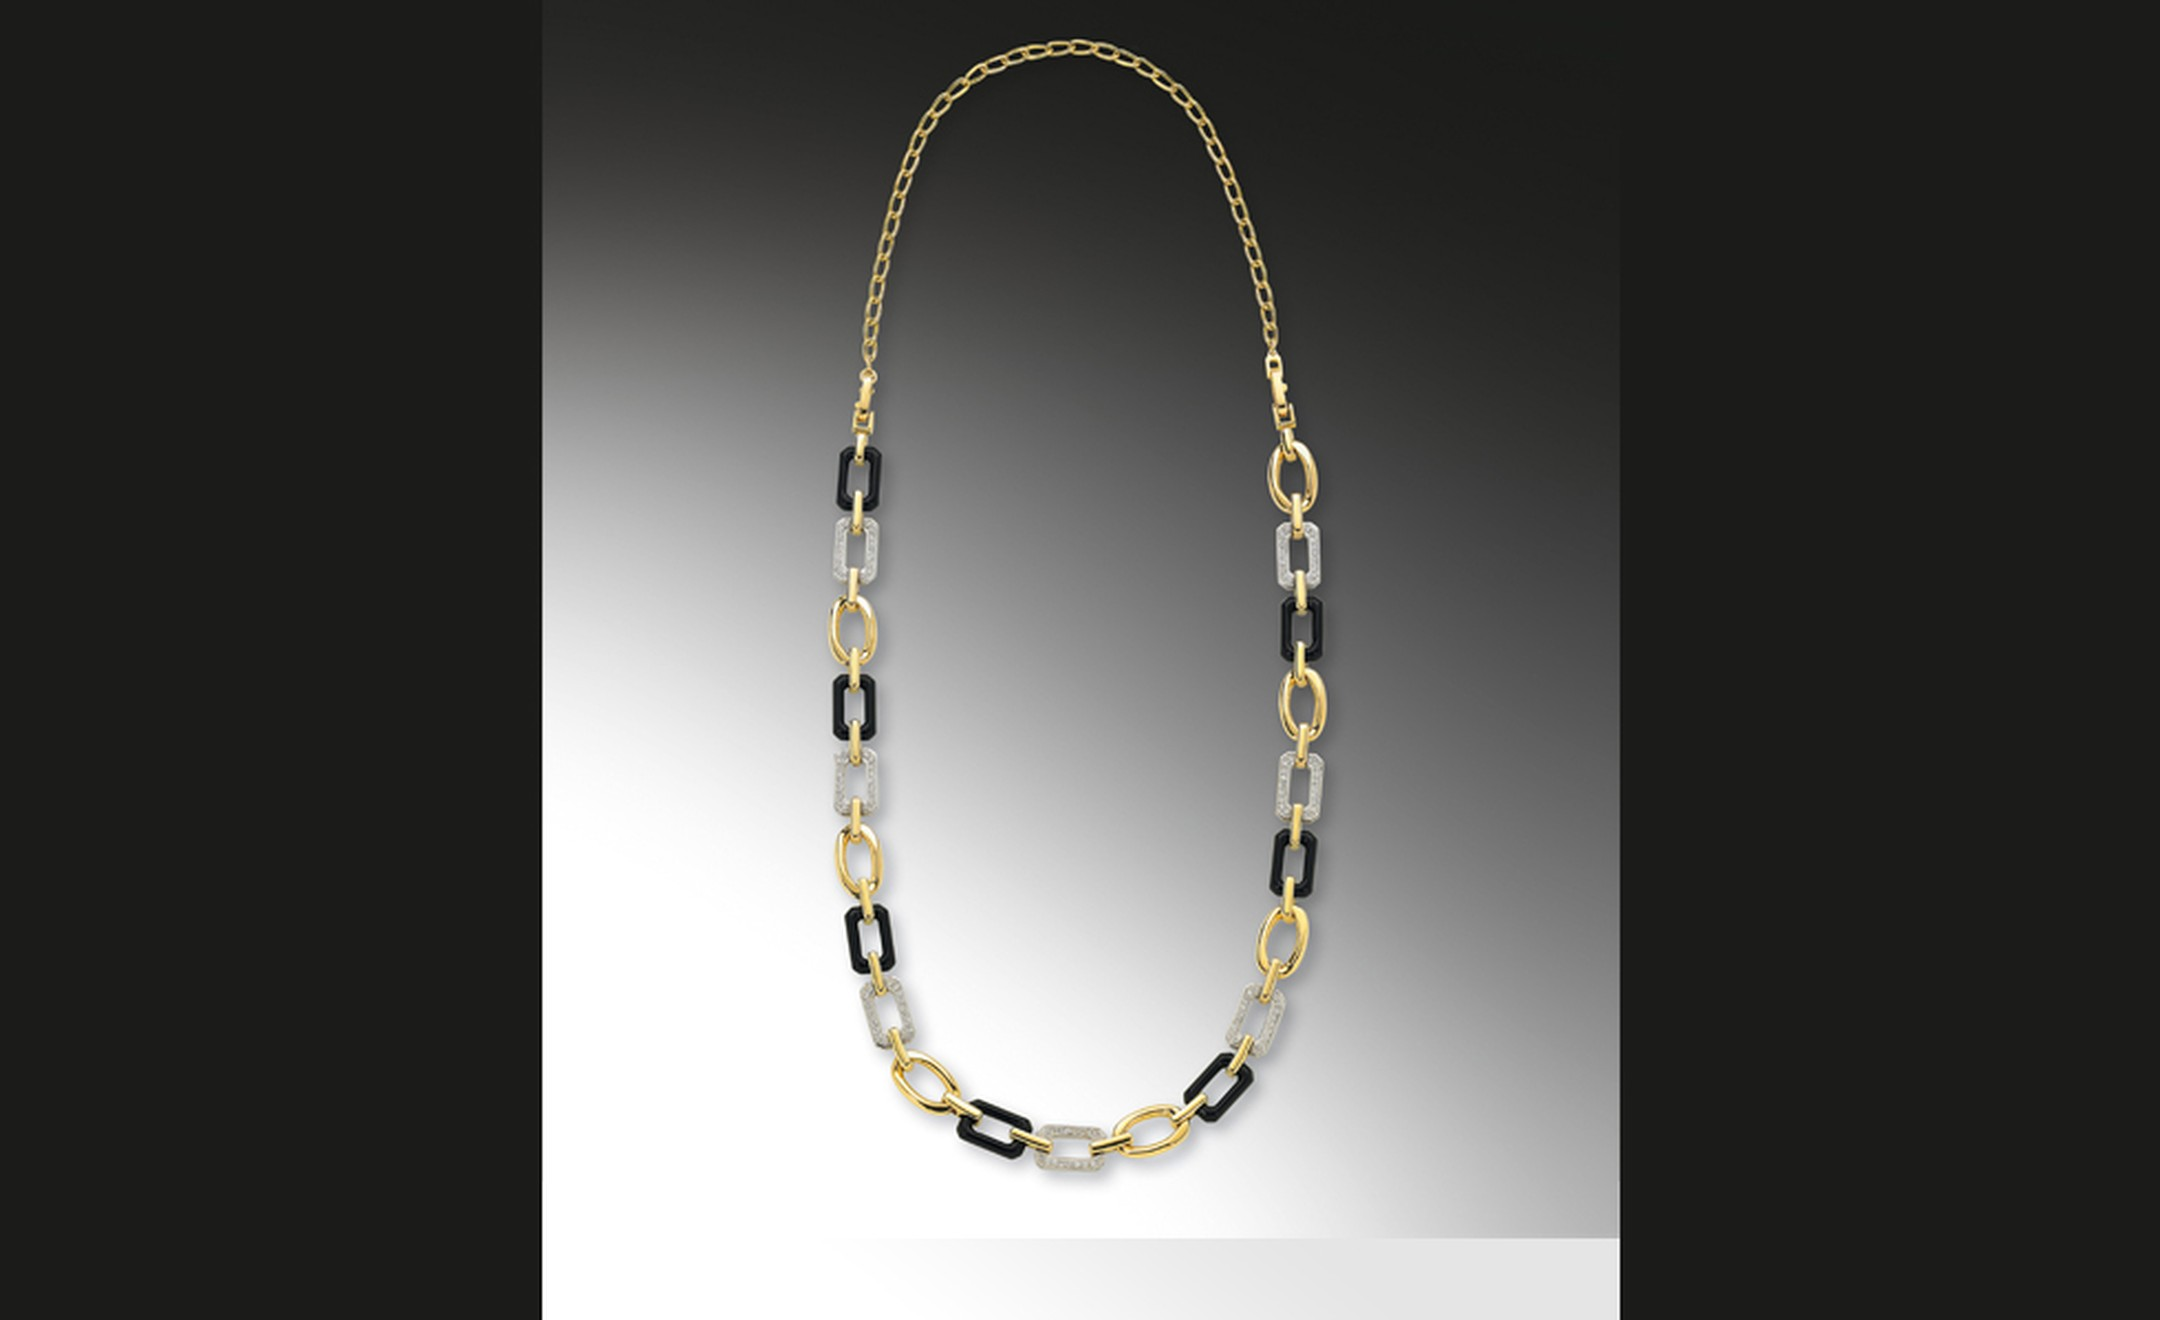 CHANEL, The Premiere necklace in 18kt yellow gold and onyx premiere necklace. £22,000